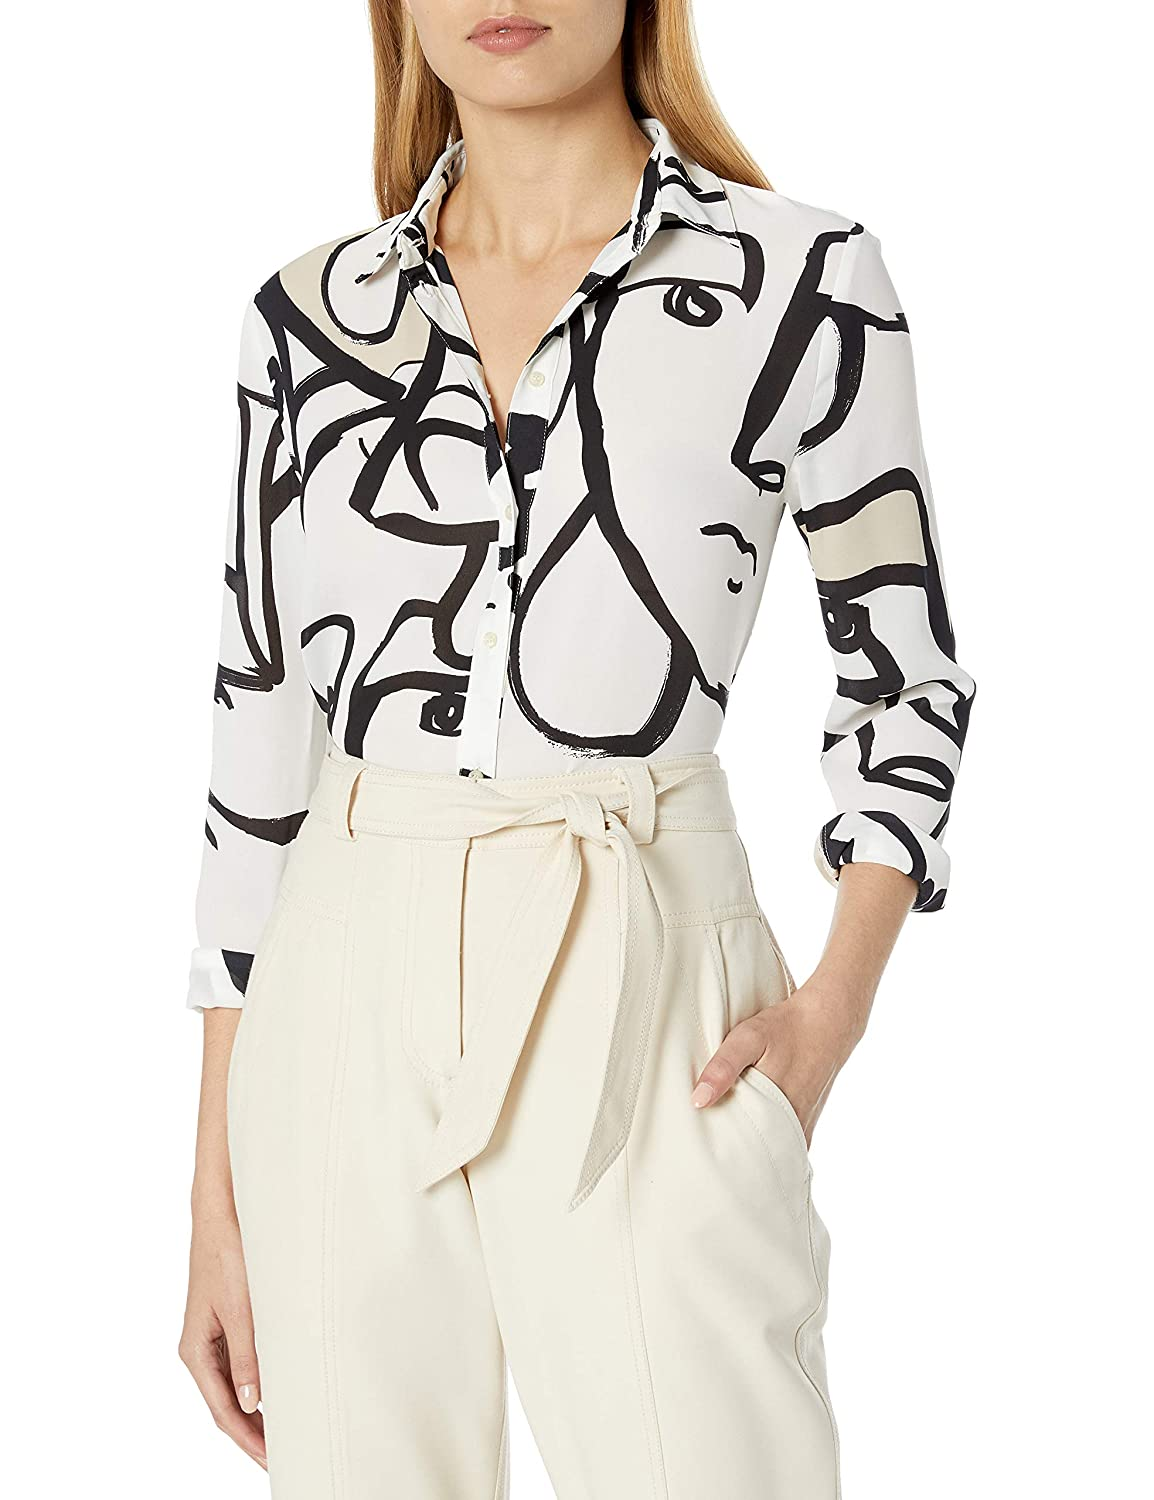 Image of Blouses & Button-Down Shirts A|X Armani Exchange Women's Classic Button Down Shirt with Abstract Face Print